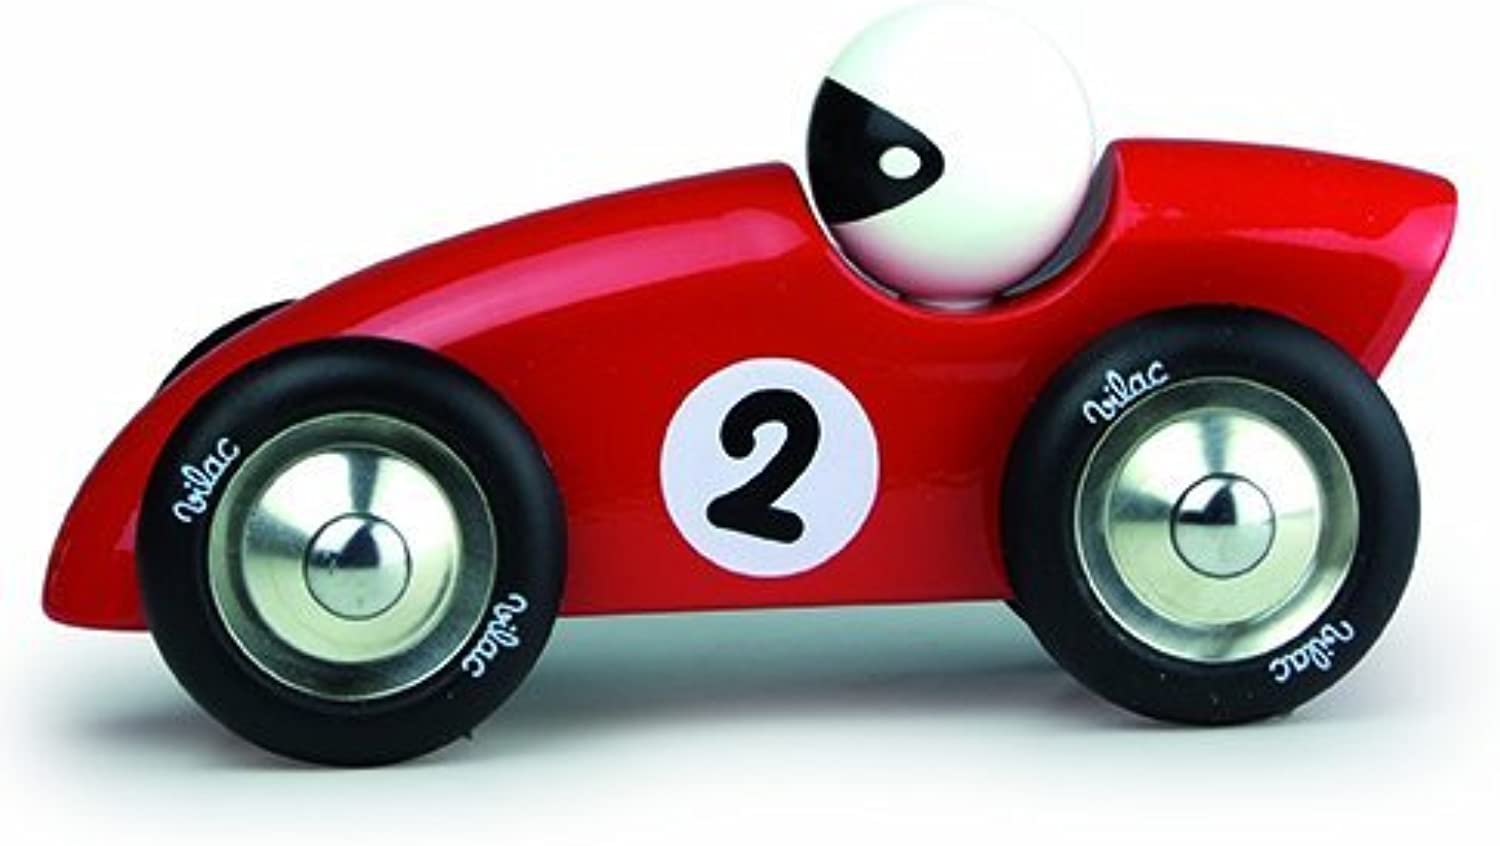 Vilac 17 x 6.5 x 8.5 cm Competition Car (Large, rot) by Vilac